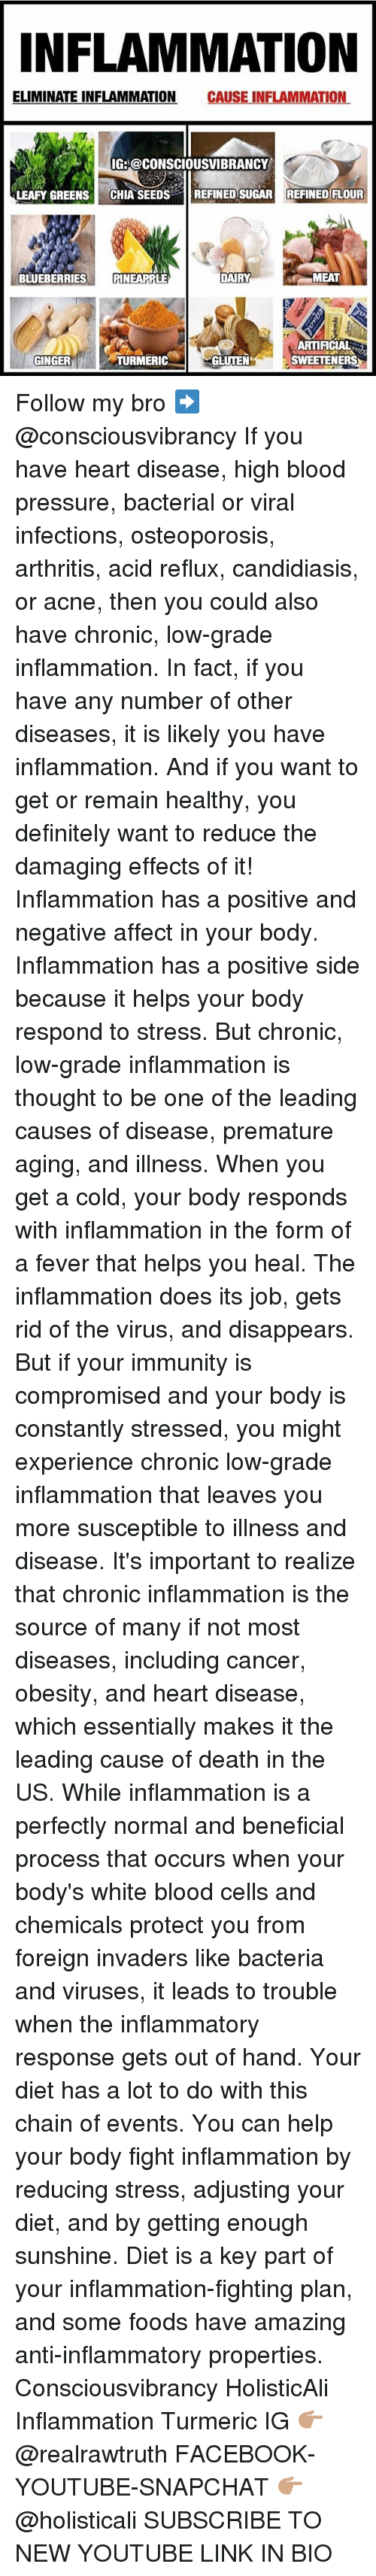 gingerly: NFLAMMATION  ELIMINATE INFLAMMATION CAUSE INFLAMMATION  IG: @CONSCIOUSVIBRANCY  LEAFY GREENS CHIA SEEDSREFINED SUGAR REFINED FLOUR  BLUEBERRIESPINEAPPLE  MEAT  ARTIFICIAL  SWEETENERS  GINGER  TURMERIC  GLUTEN Follow my bro ➡️ @consciousvibrancy If you have heart disease, high blood pressure, bacterial or viral infections, osteoporosis, arthritis, acid reflux, candidiasis, or acne, then you could also have chronic, low-grade inflammation. In fact, if you have any number of other diseases, it is likely you have inflammation. And if you want to get or remain healthy, you definitely want to reduce the damaging effects of it! Inflammation has a positive and negative affect in your body. Inflammation has a positive side because it helps your body respond to stress. But chronic, low-grade inflammation is thought to be one of the leading causes of disease, premature aging, and illness. When you get a cold, your body responds with inflammation in the form of a fever that helps you heal. The inflammation does its job, gets rid of the virus, and disappears. But if your immunity is compromised and your body is constantly stressed, you might experience chronic low-grade inflammation that leaves you more susceptible to illness and disease. It's important to realize that chronic inflammation is the source of many if not most diseases, including cancer, obesity, and heart disease, which essentially makes it the leading cause of death in the US. While inflammation is a perfectly normal and beneficial process that occurs when your body's white blood cells and chemicals protect you from foreign invaders like bacteria and viruses, it leads to trouble when the inflammatory response gets out of hand. Your diet has a lot to do with this chain of events. You can help your body fight inflammation by reducing stress, adjusting your diet, and by getting enough sunshine. Diet is a key part of your inflammation-fighting plan, and some foods have amazing anti-inflammatory properties. C